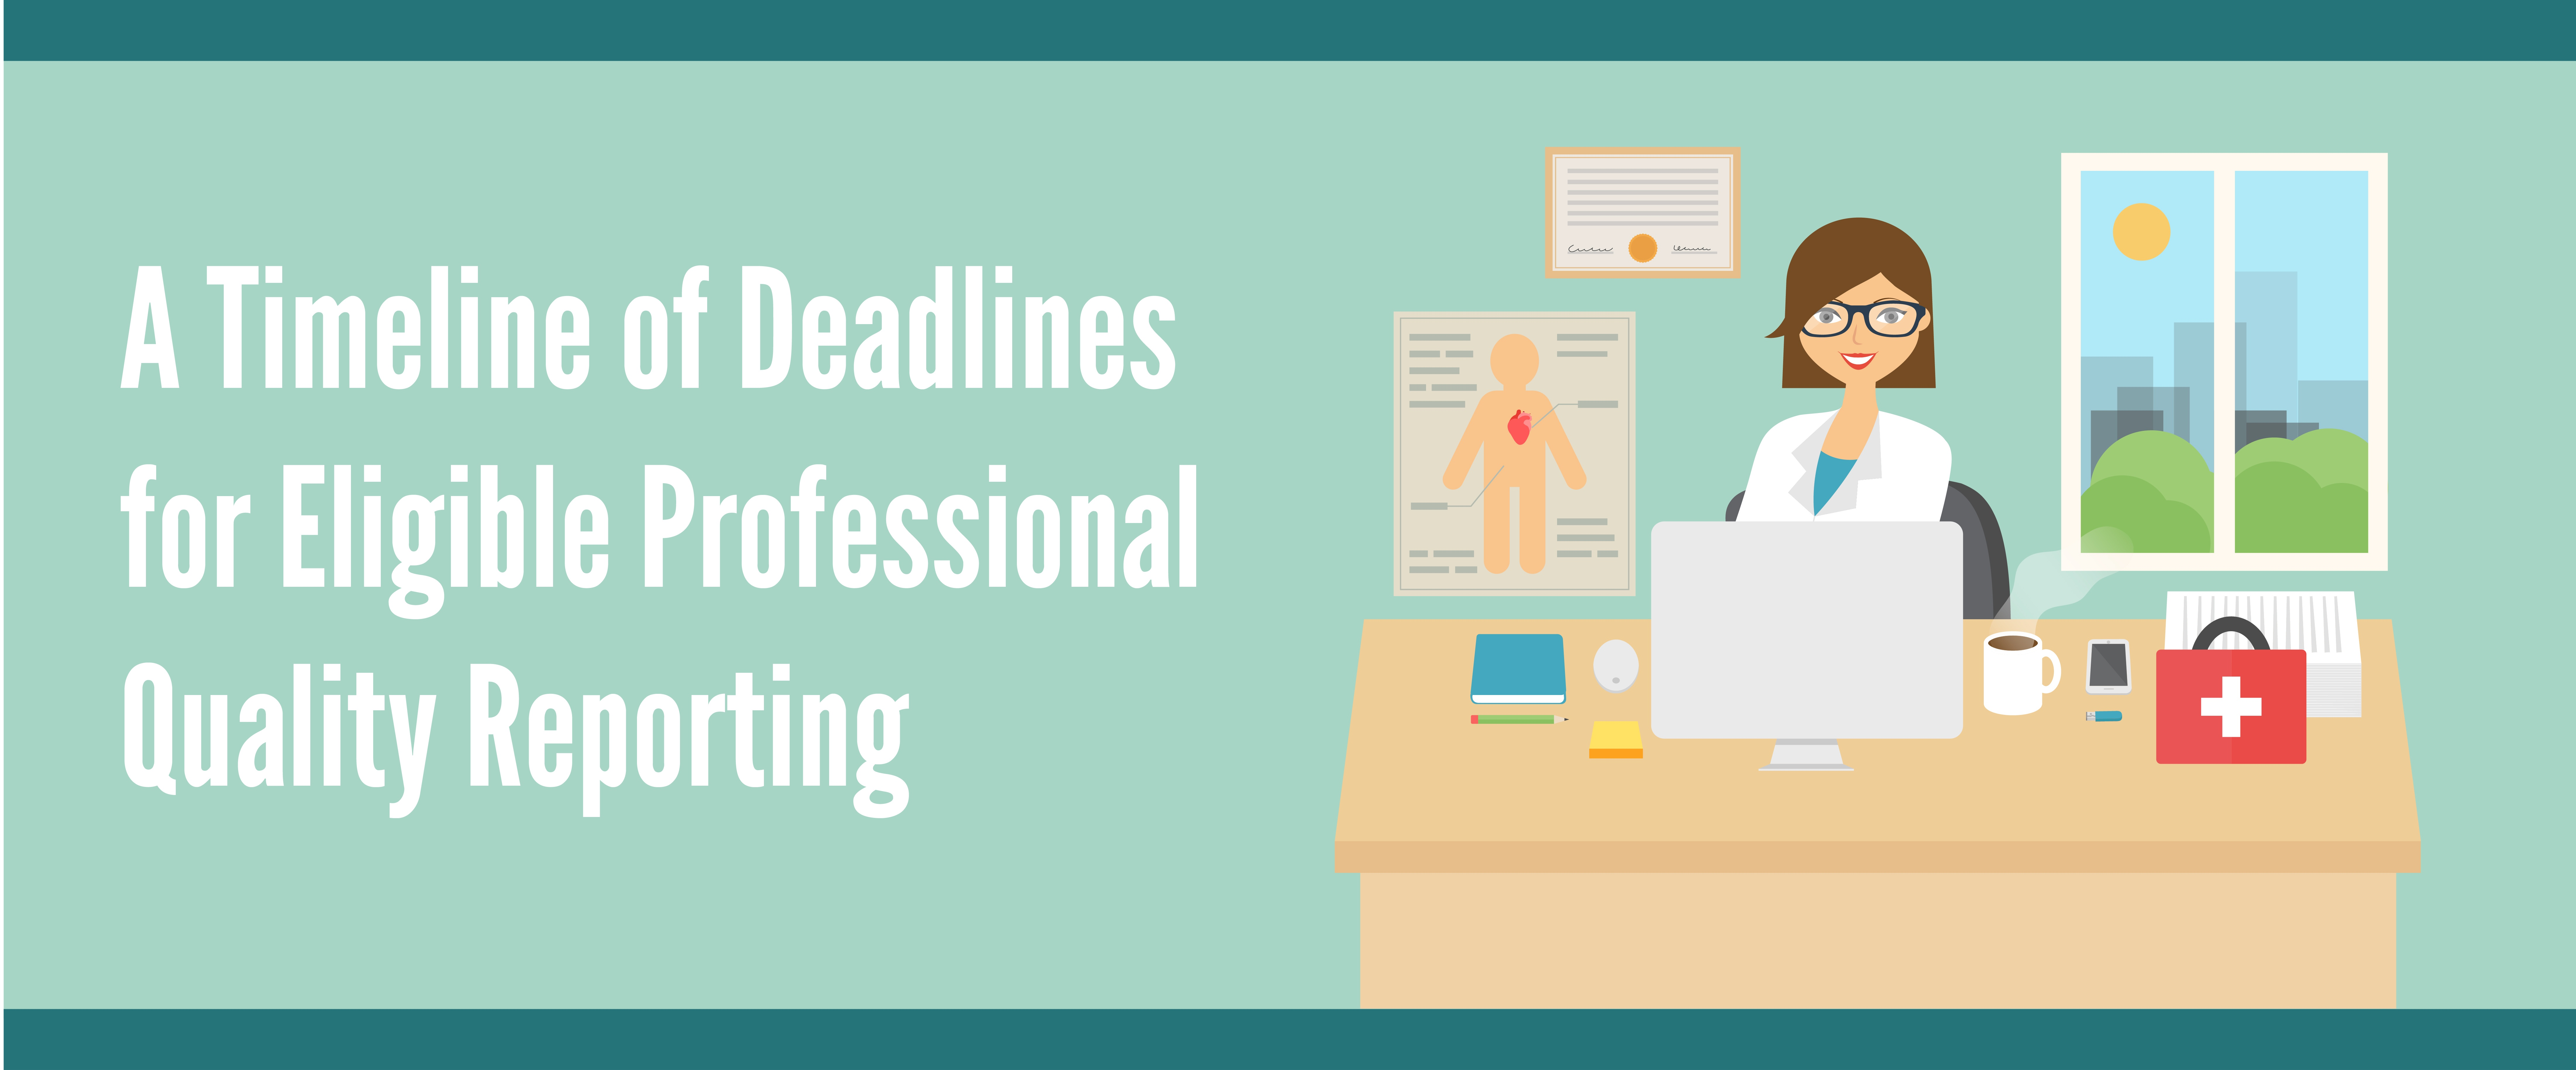 EP-Deadlines-Infographic-Header-01.jpg